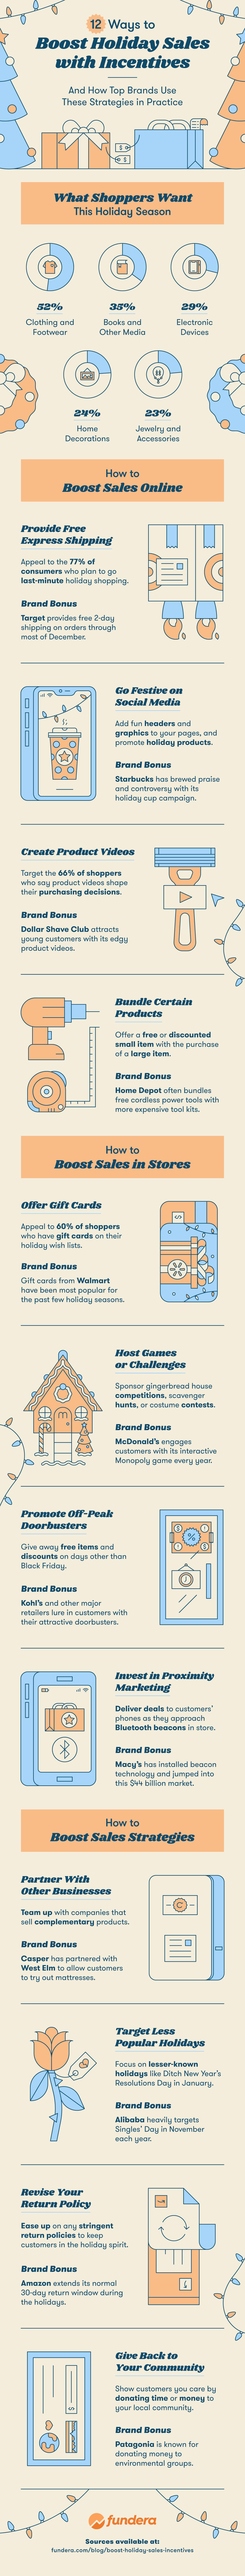 How to Boost 2020 Holiday Sales with Incentives